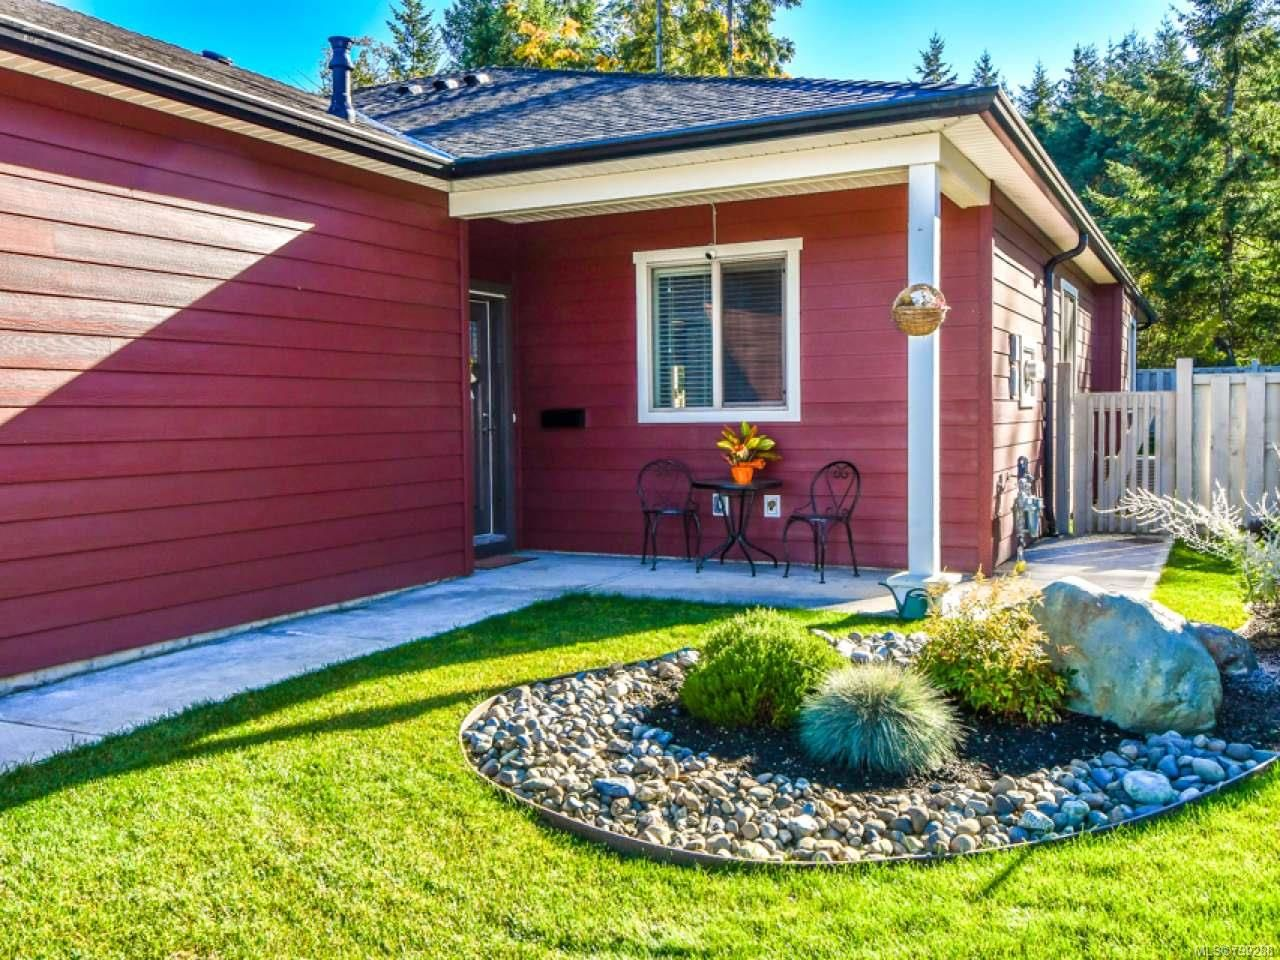 Photo 37: Photos: 11 301 Arizona Dr in CAMPBELL RIVER: CR Willow Point Half Duplex for sale (Campbell River)  : MLS®# 799288